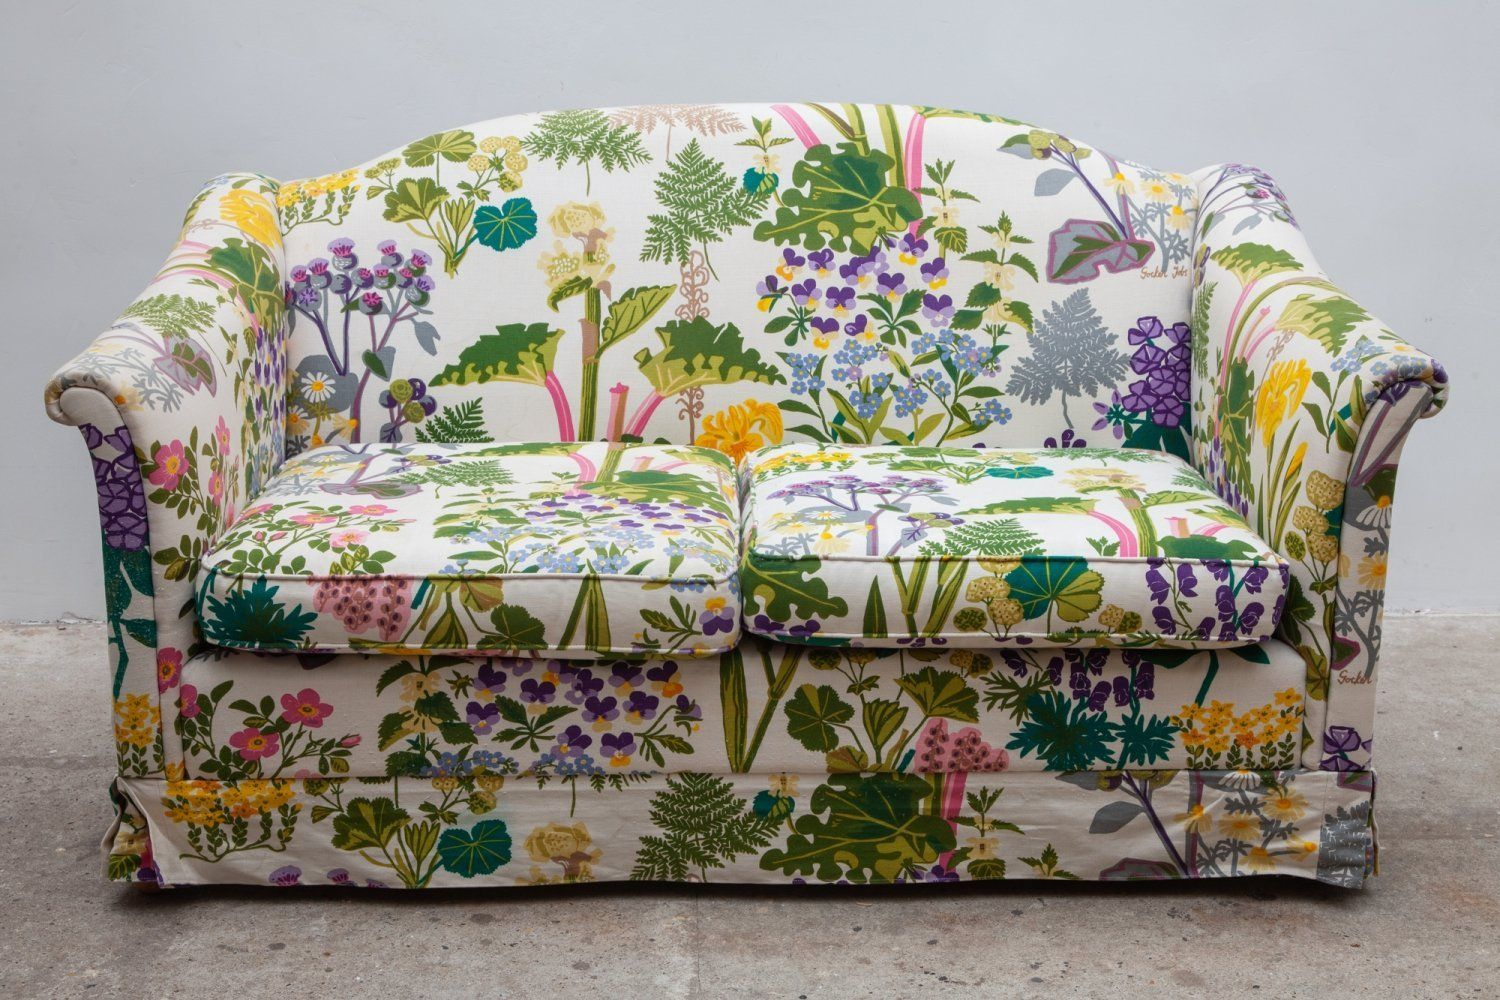 For Sale Vintage Floral Print Sofa With Fabric By Gocken Jobs 1969 Floral Sofa Printed Sofa Fabric Sofa